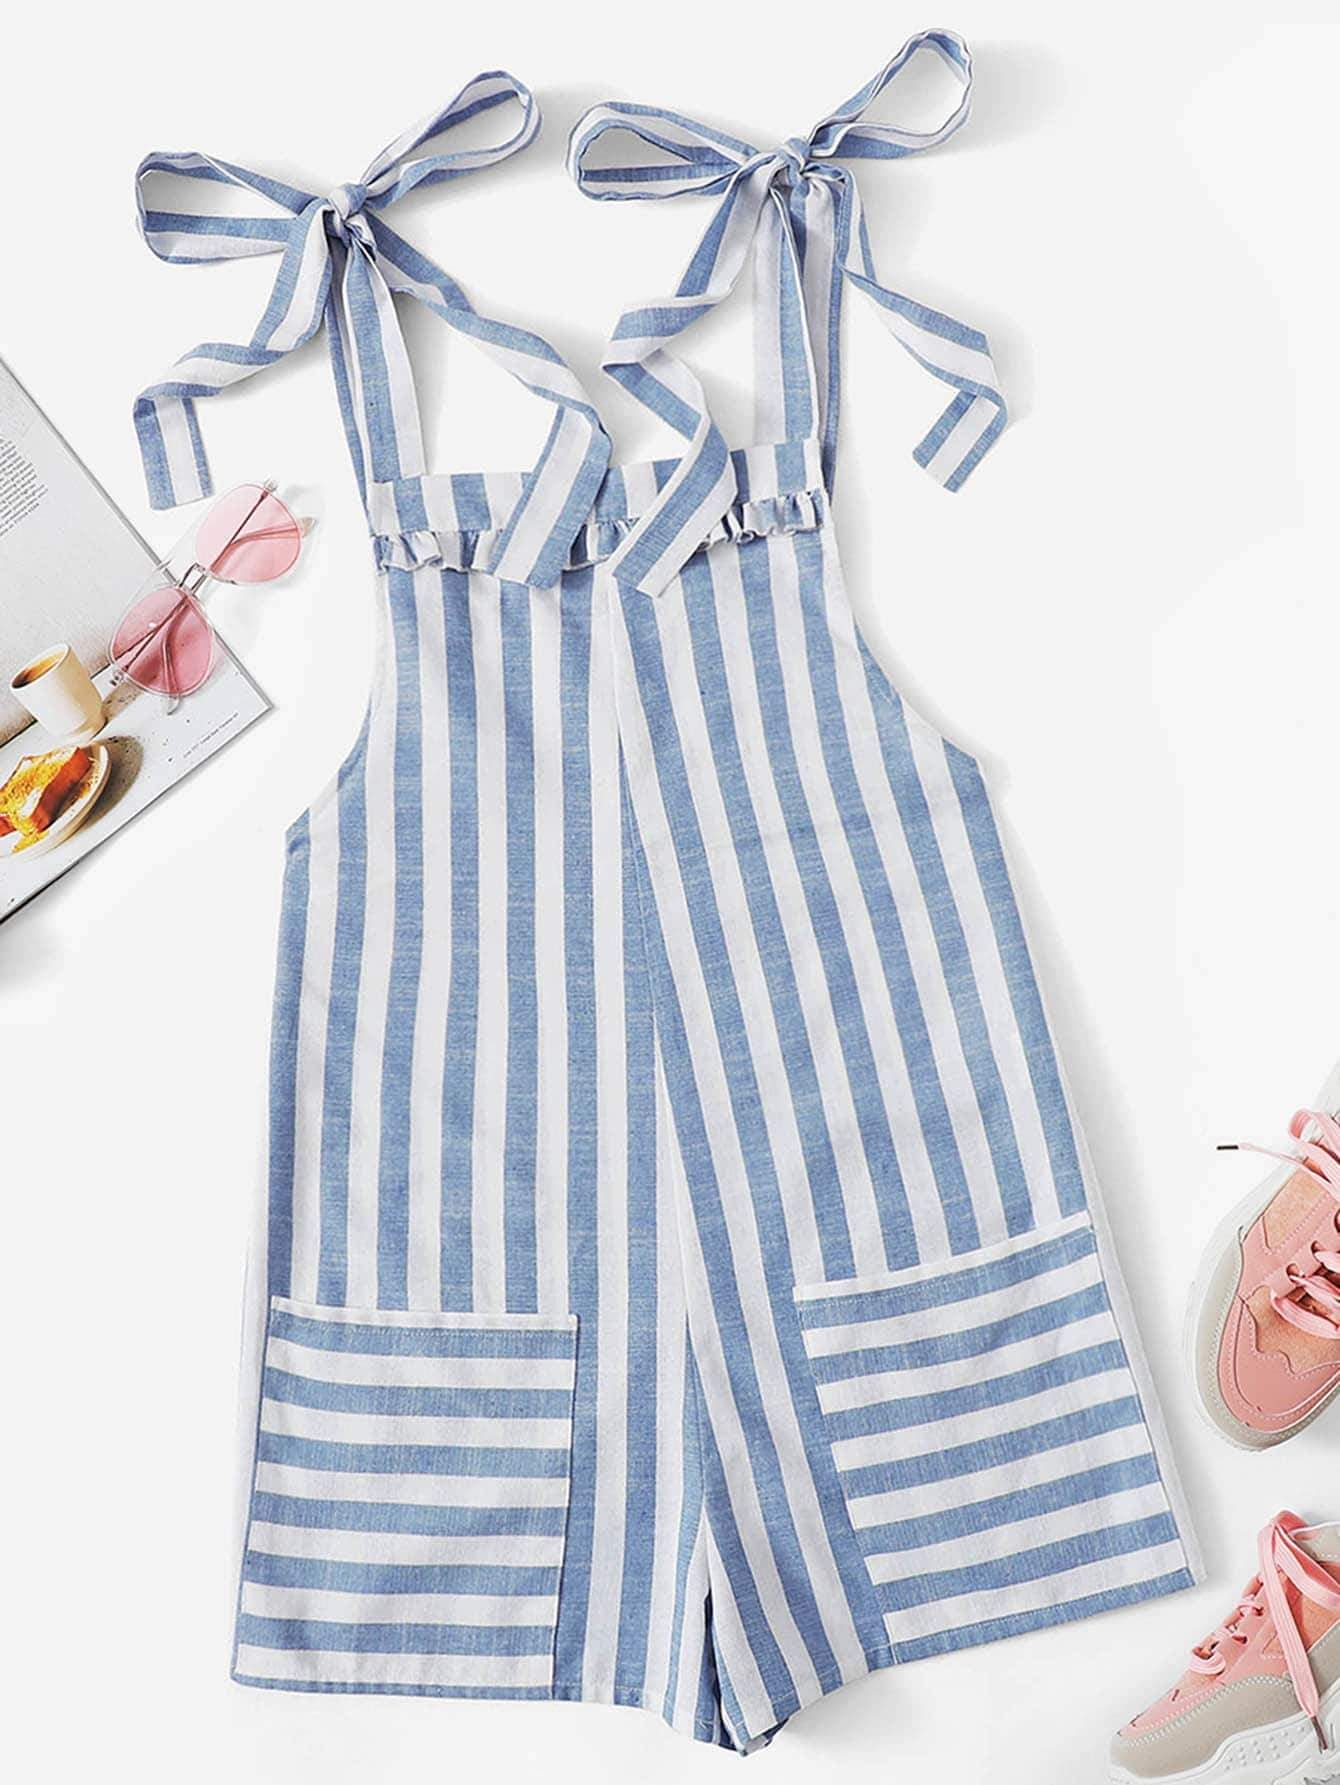 f6baccc2b8 Ruffle Trim Knot Strap Striped Jumpsuit - Popviva #summer #year #fall  #spring #season #winter #daylight #summertime #vacations #holiday #autumn  #estate ...